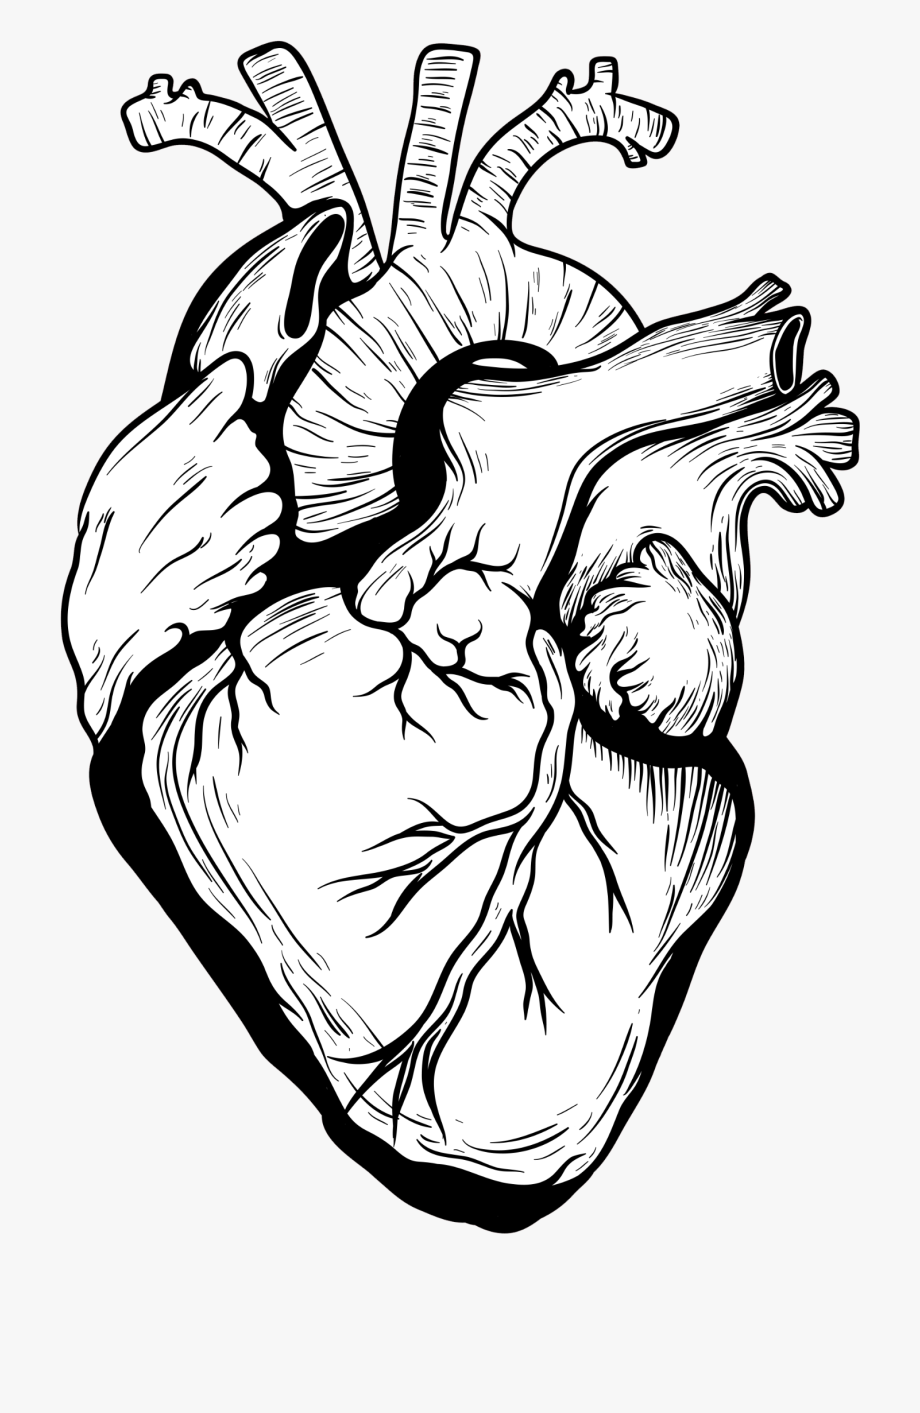 Real Heart Drawing Png In 2020 Human Heart Drawing Heart Drawing Heart Pencil Drawing